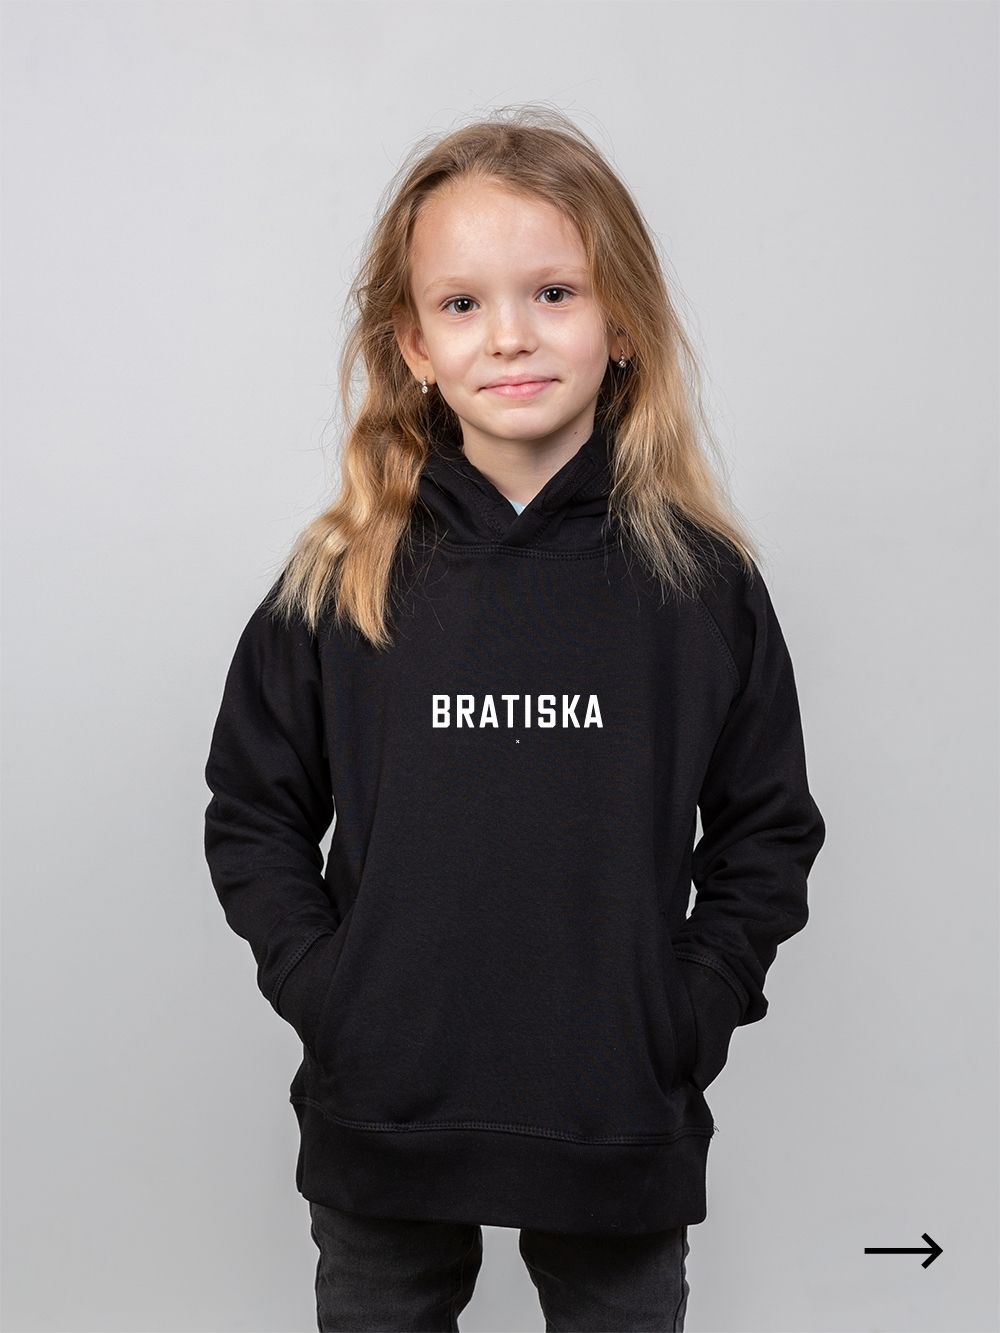 Bratiska Simple Kids